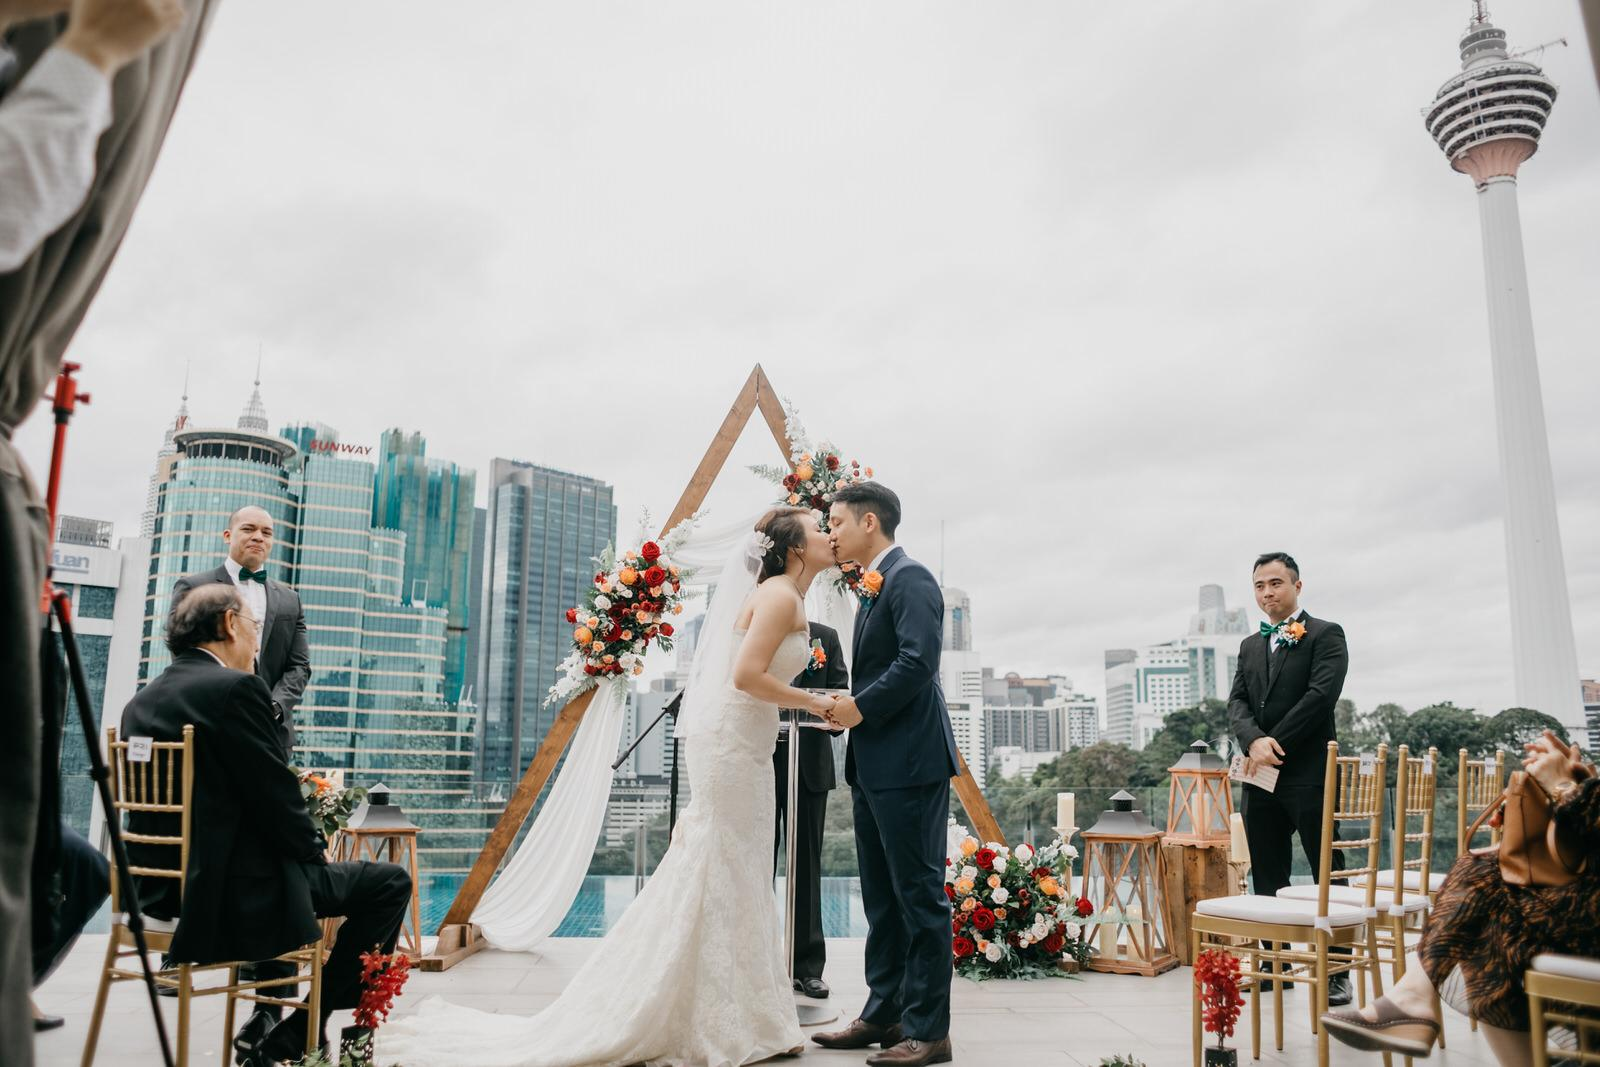 Newly wed Couple Kiss Vow Rings Exchange Boho Deco Rooftop Poolside Wedding at Hotel Stripes Kuala Lumpur MCO2.0 Cliff Choong Photography Malaysia Covid19 ROM